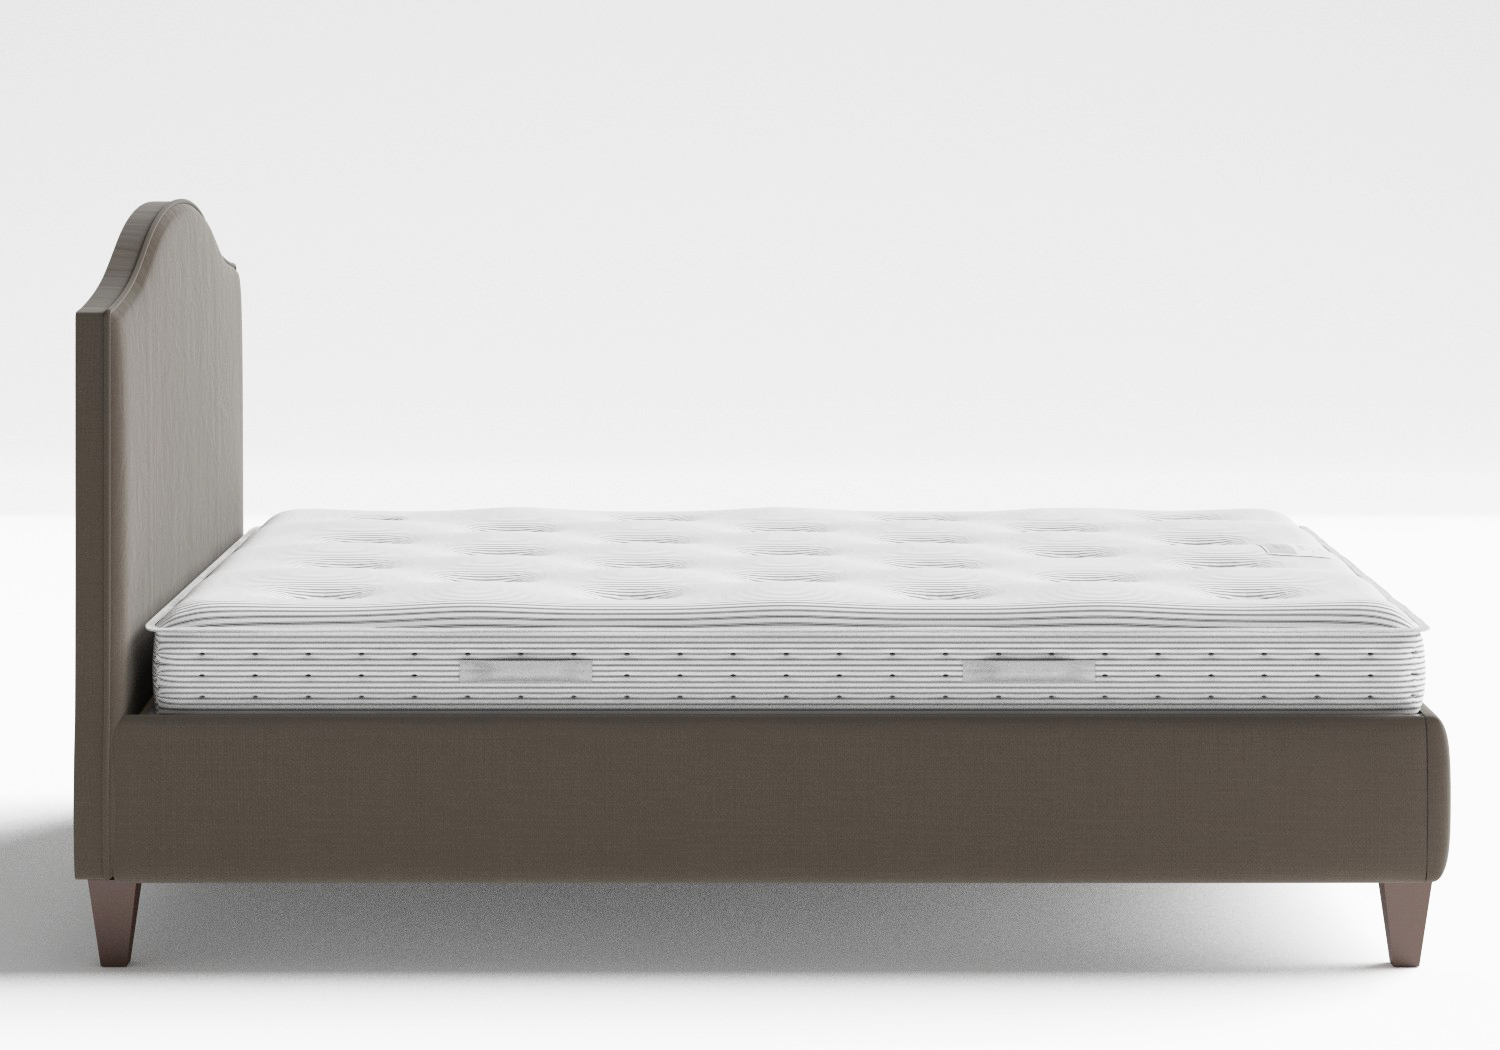 Daniella Upholstered bed in Grey fabric with piping shown with Juno 1 mattress